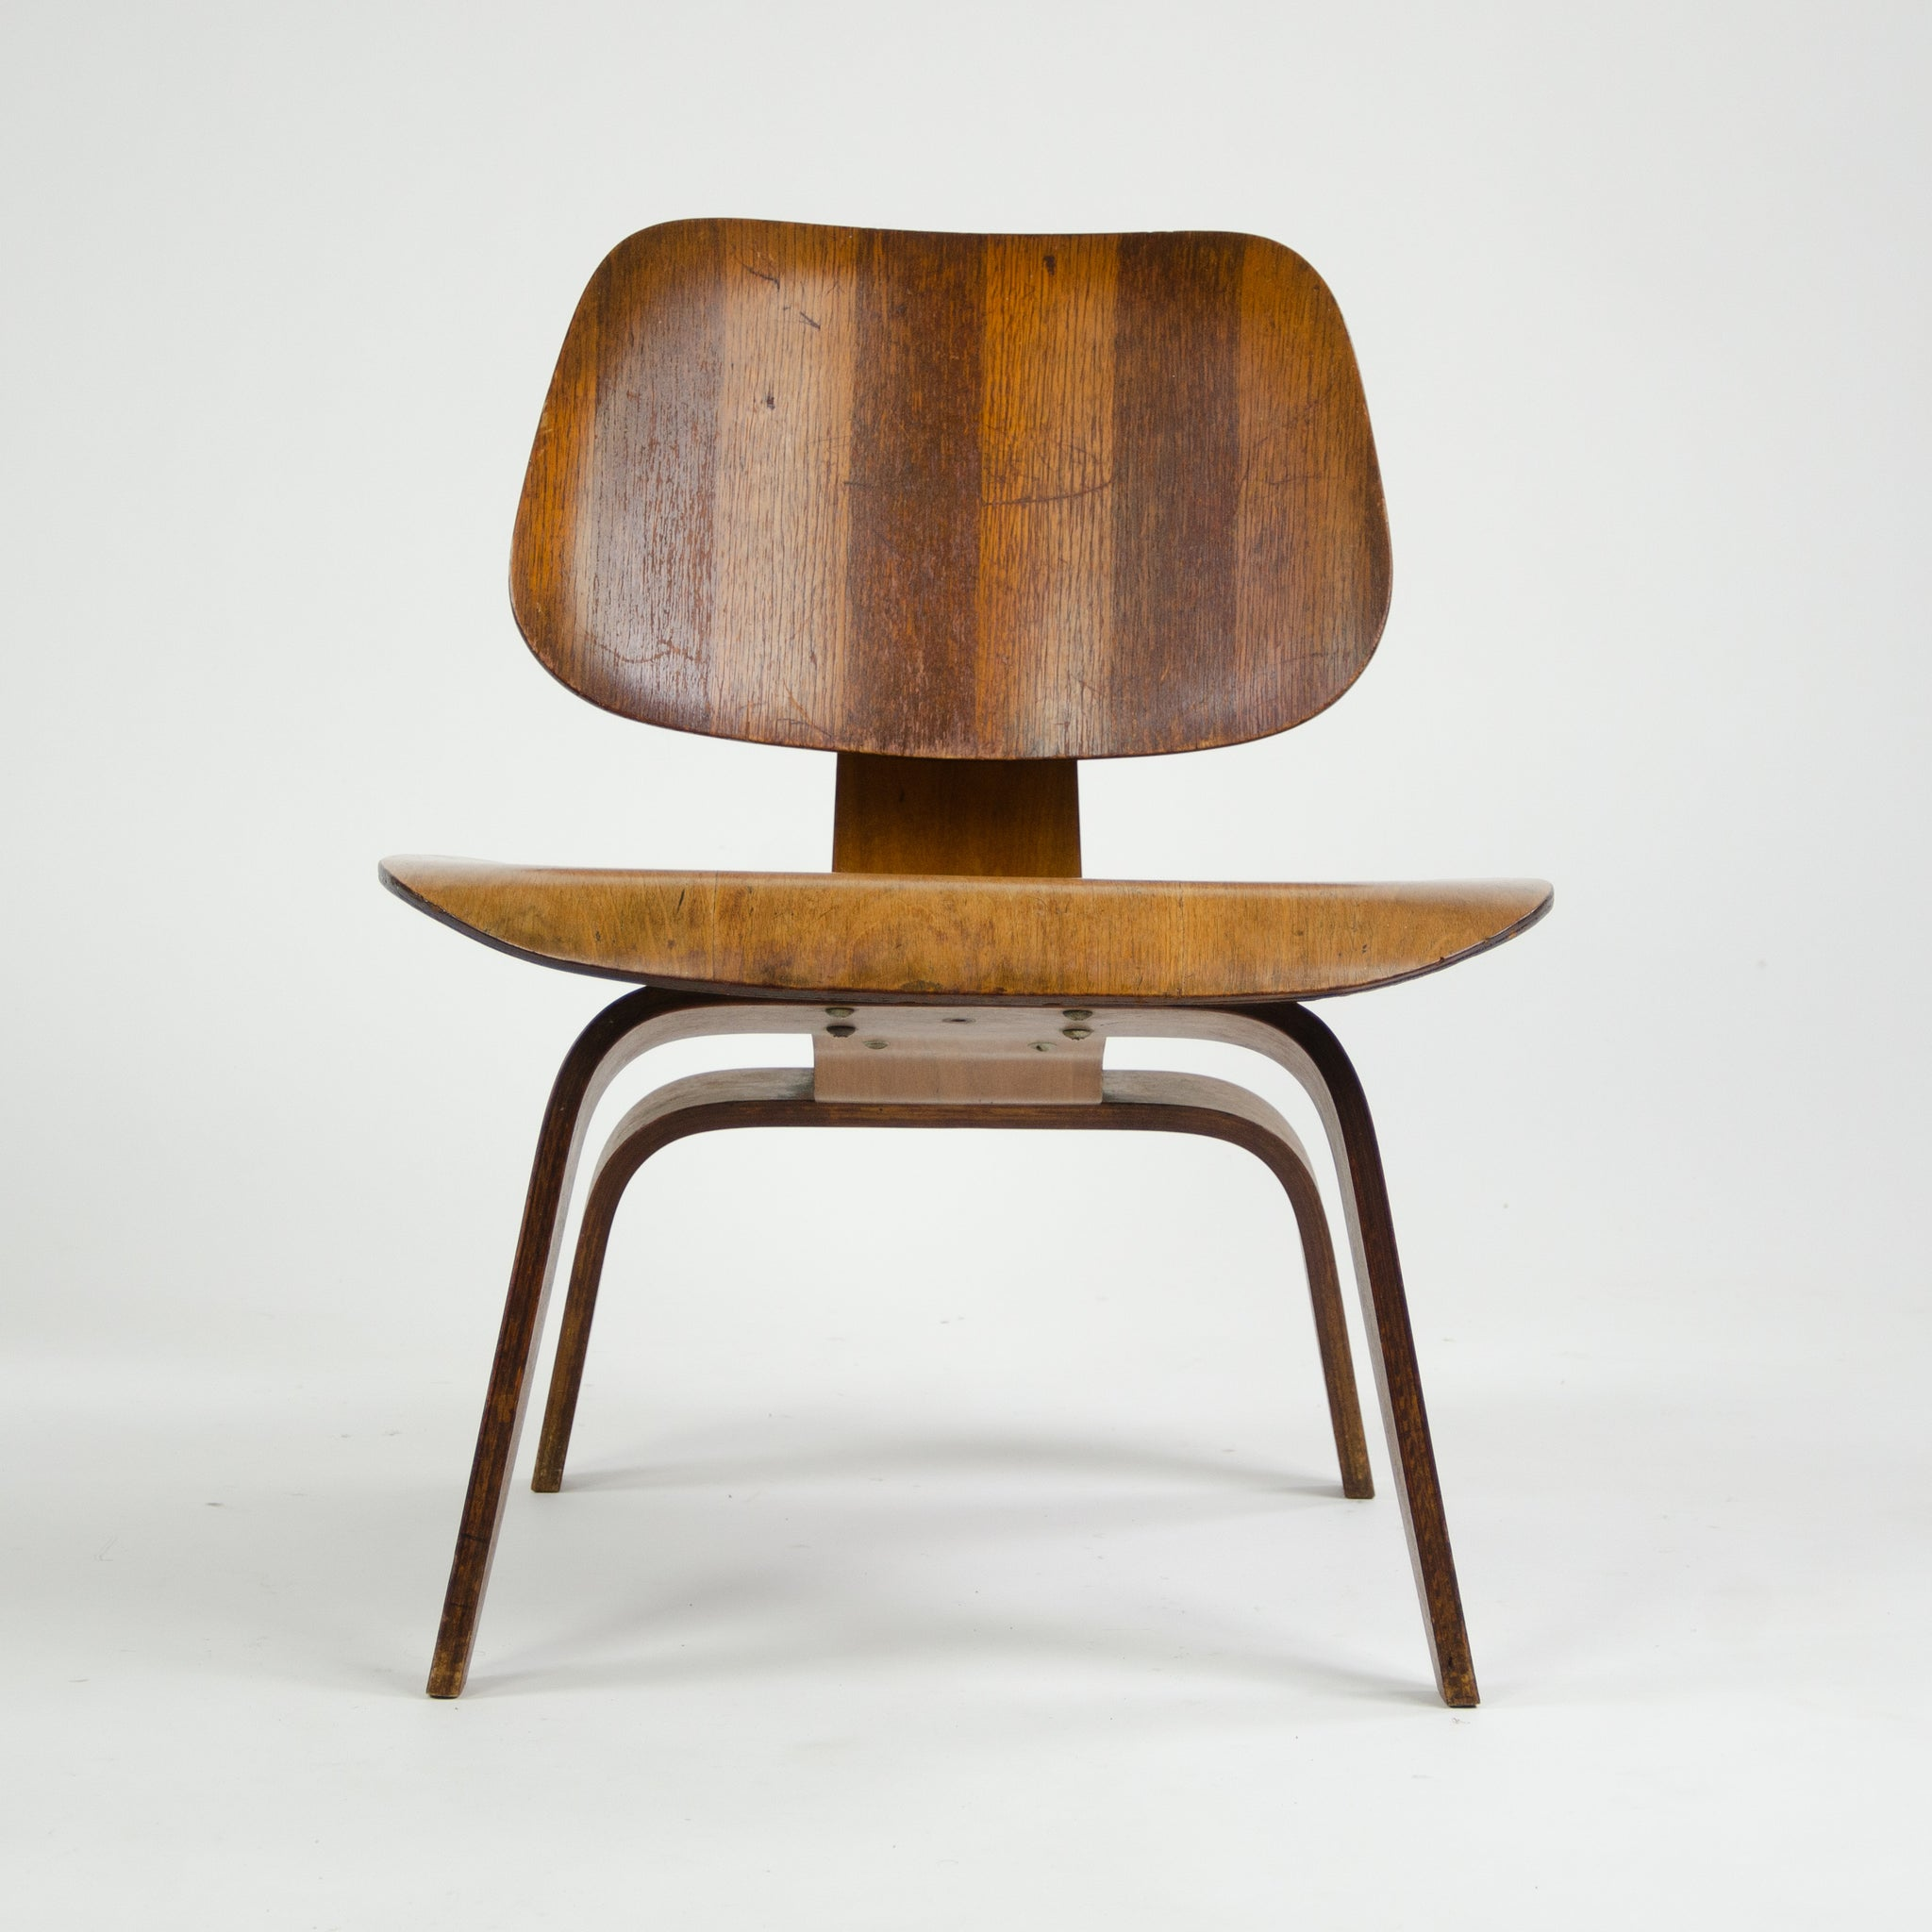 SOLD Eames Evans RARE Herman Miller 1947 LCW Lounge Chair Wood Walnut